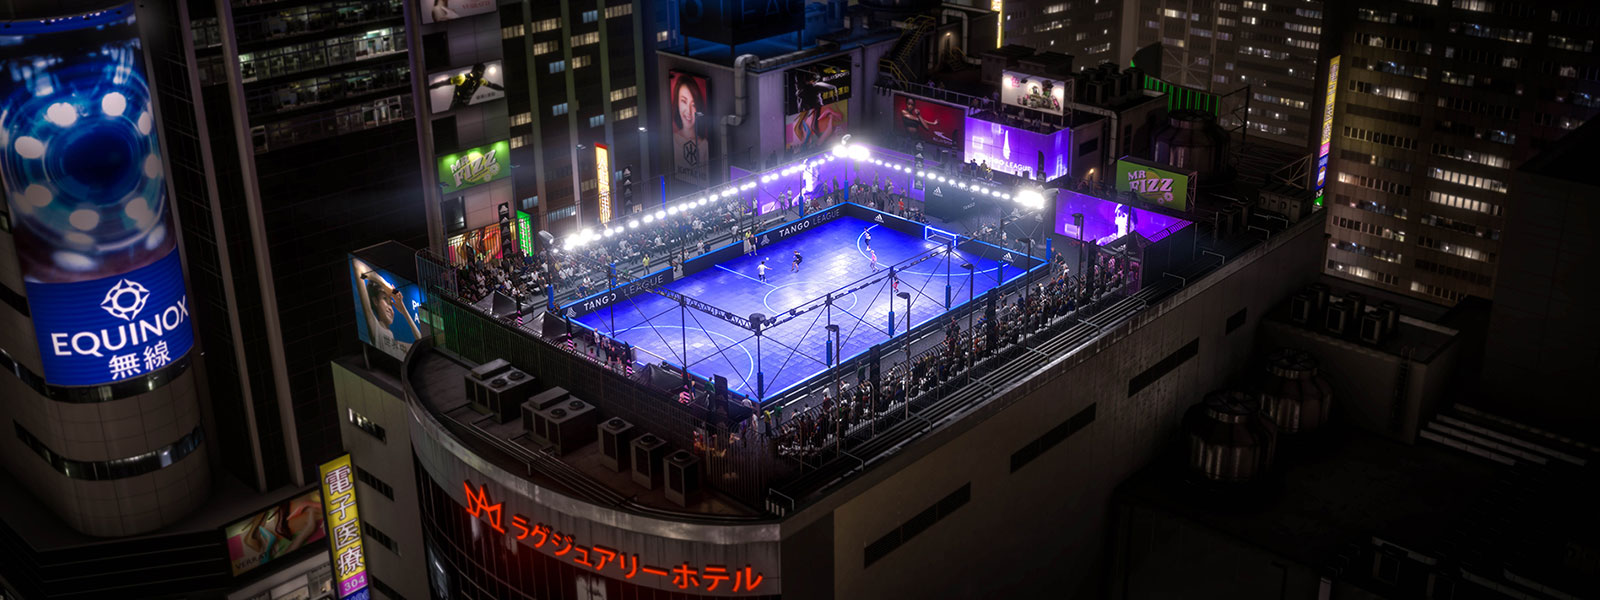 People playing street football on a rooftop cage in Tokyo